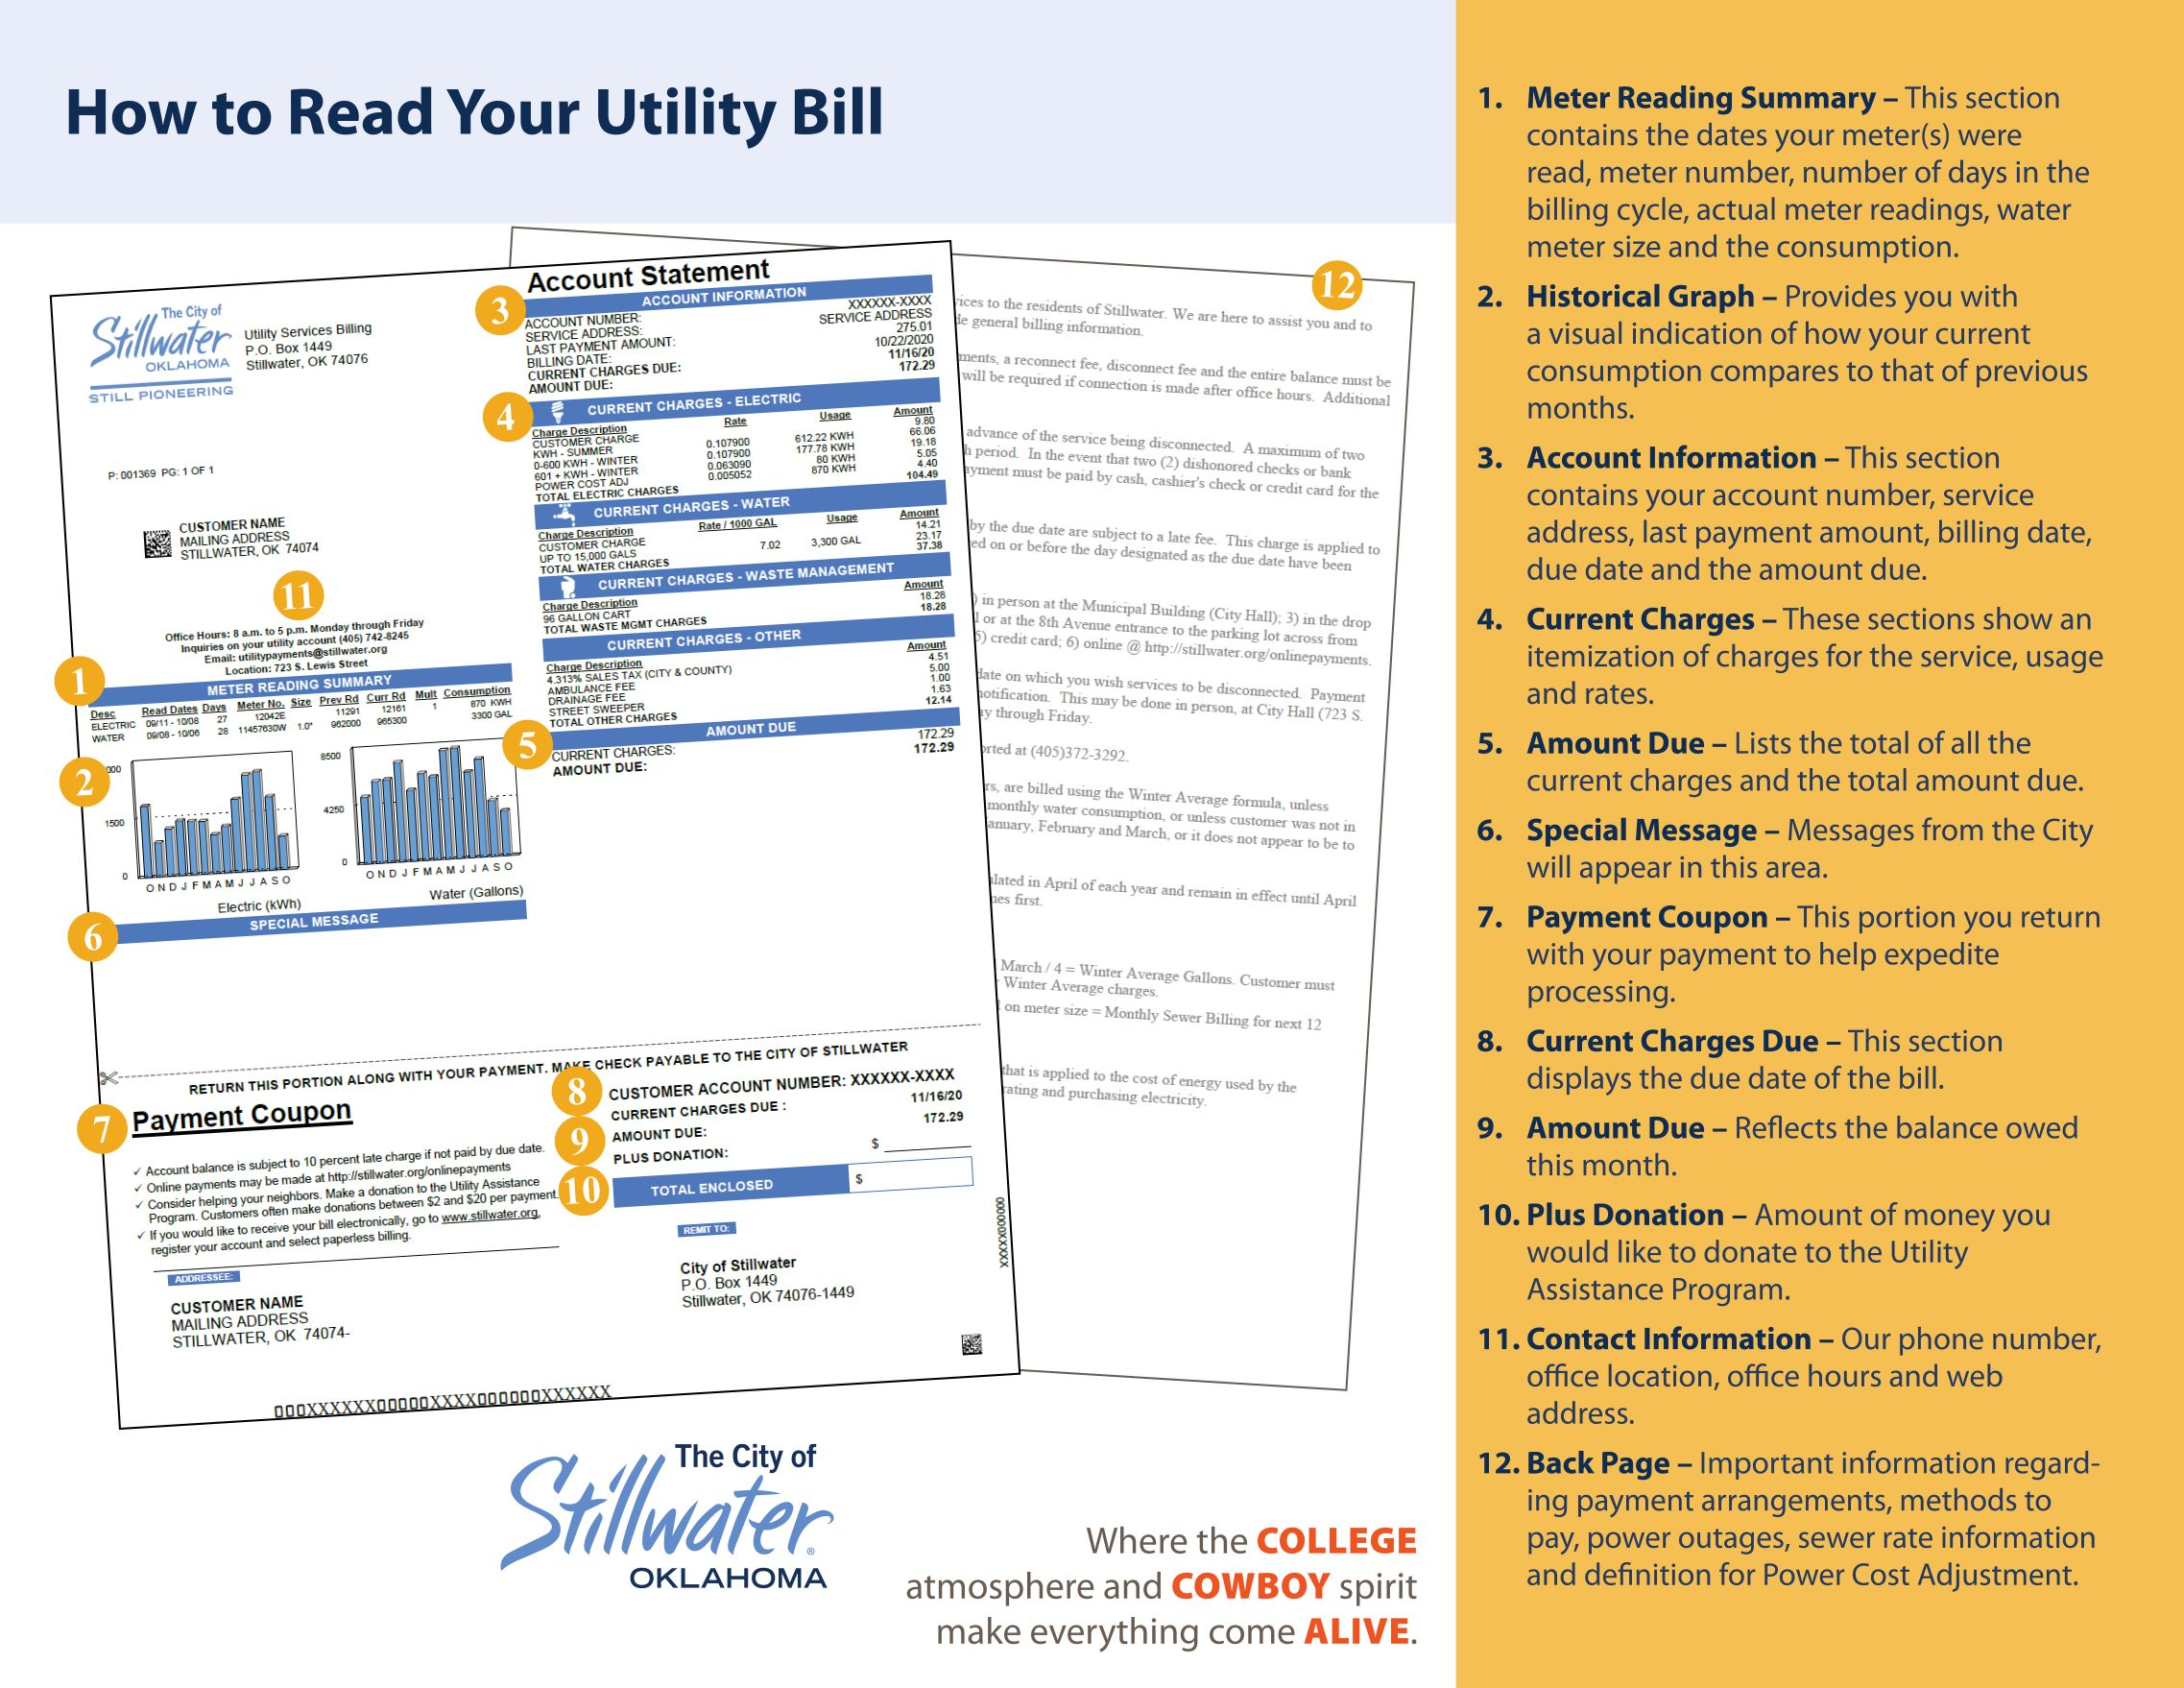 How to read your new utility bill image